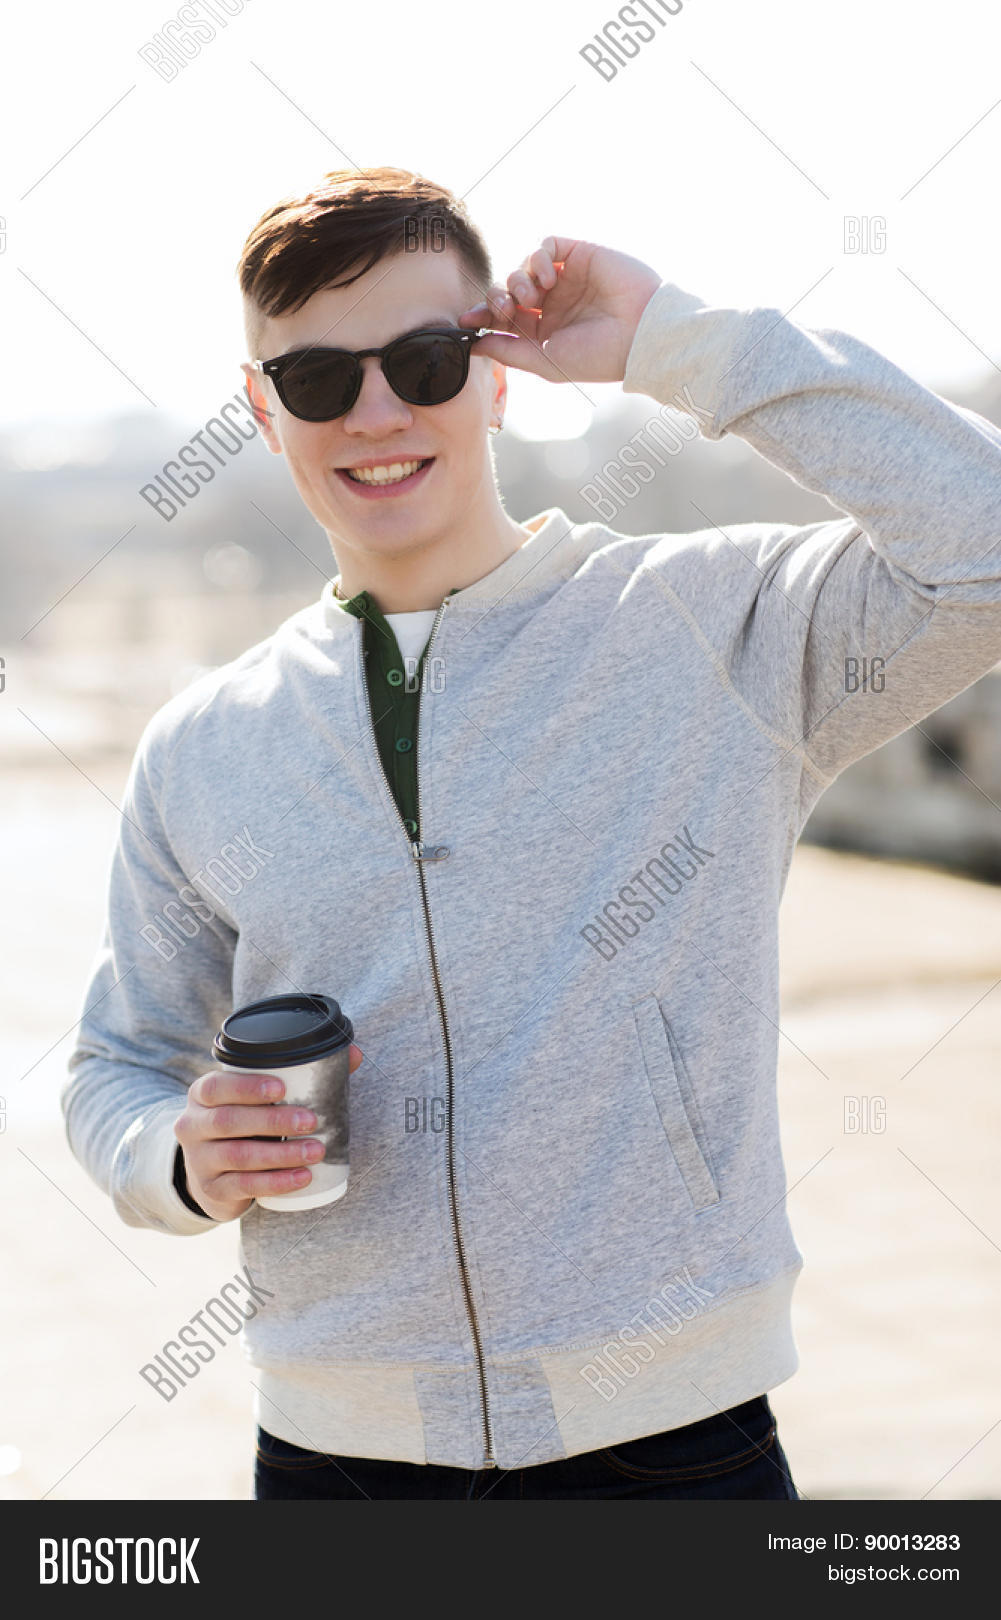 drinks and people concept - smiling young man or teenage boy drinking coffee from paper cup outdoors